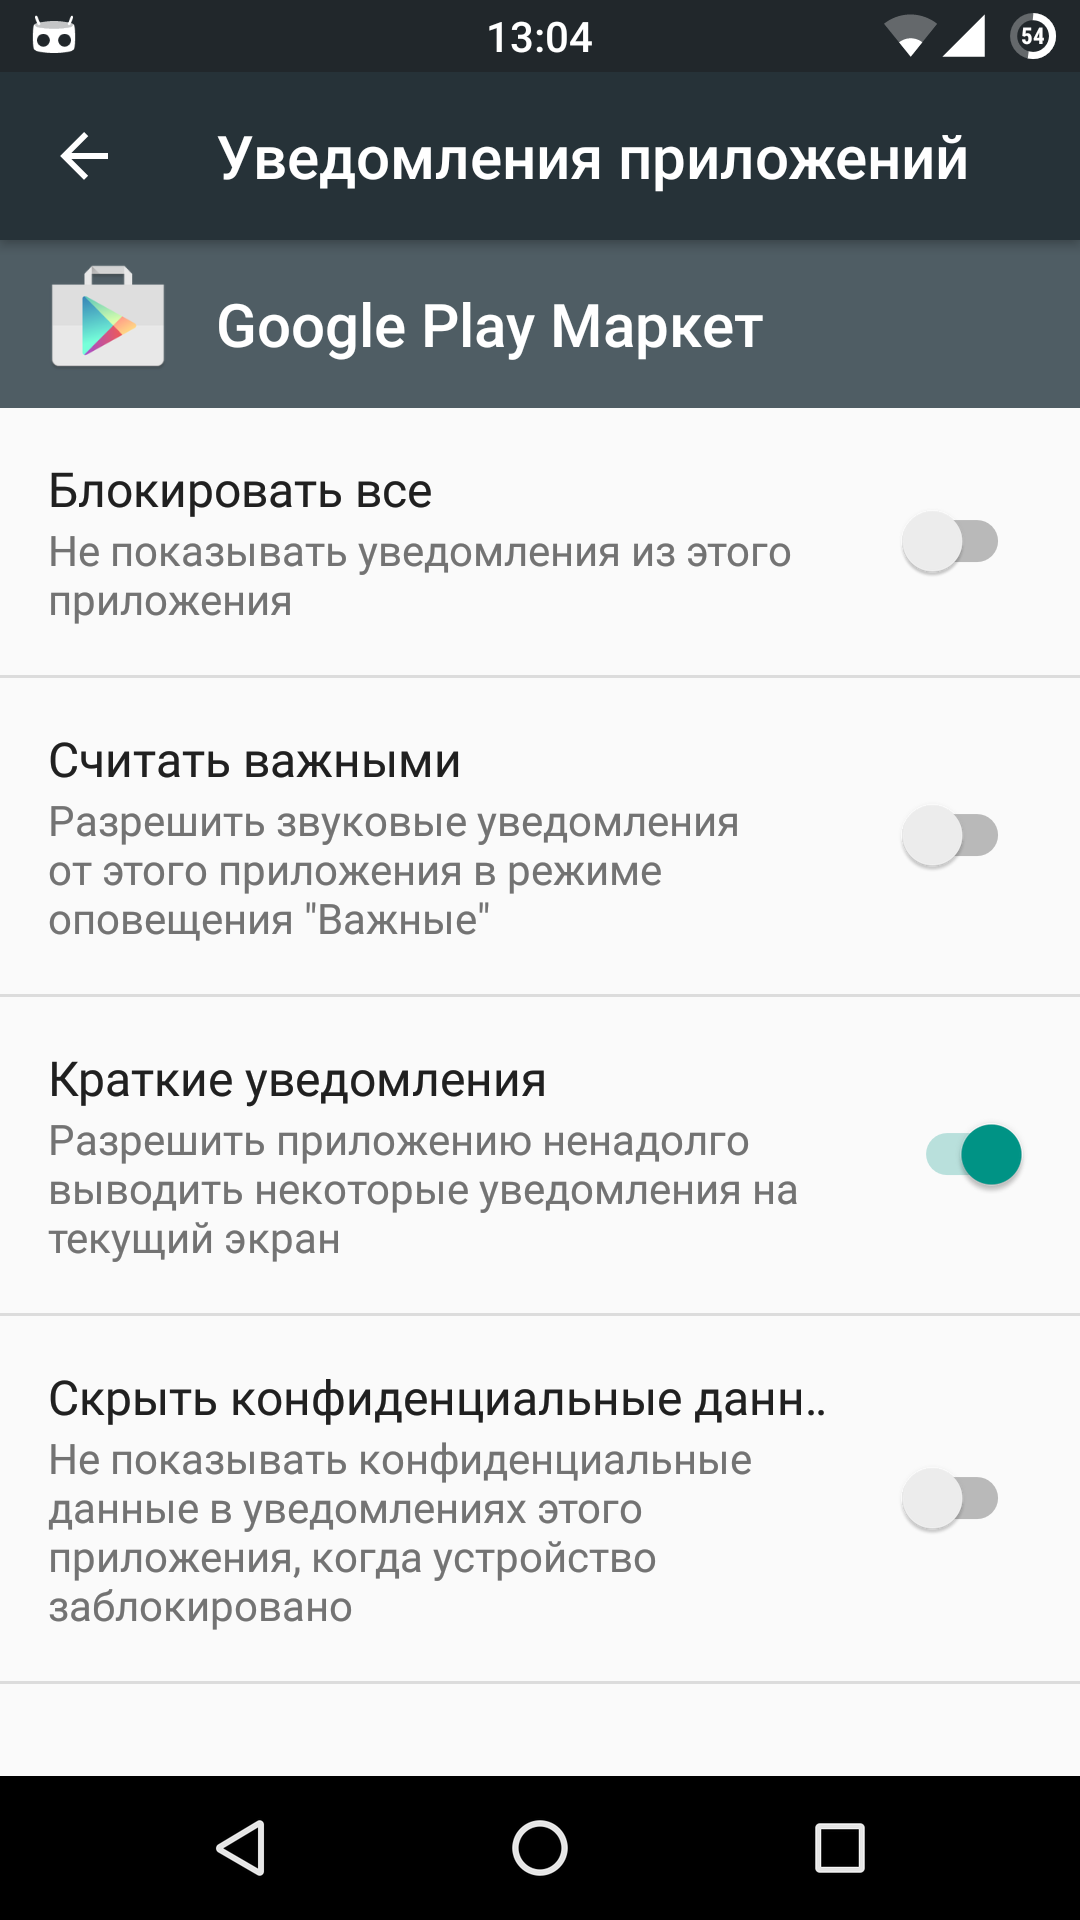 Google Play notification settings